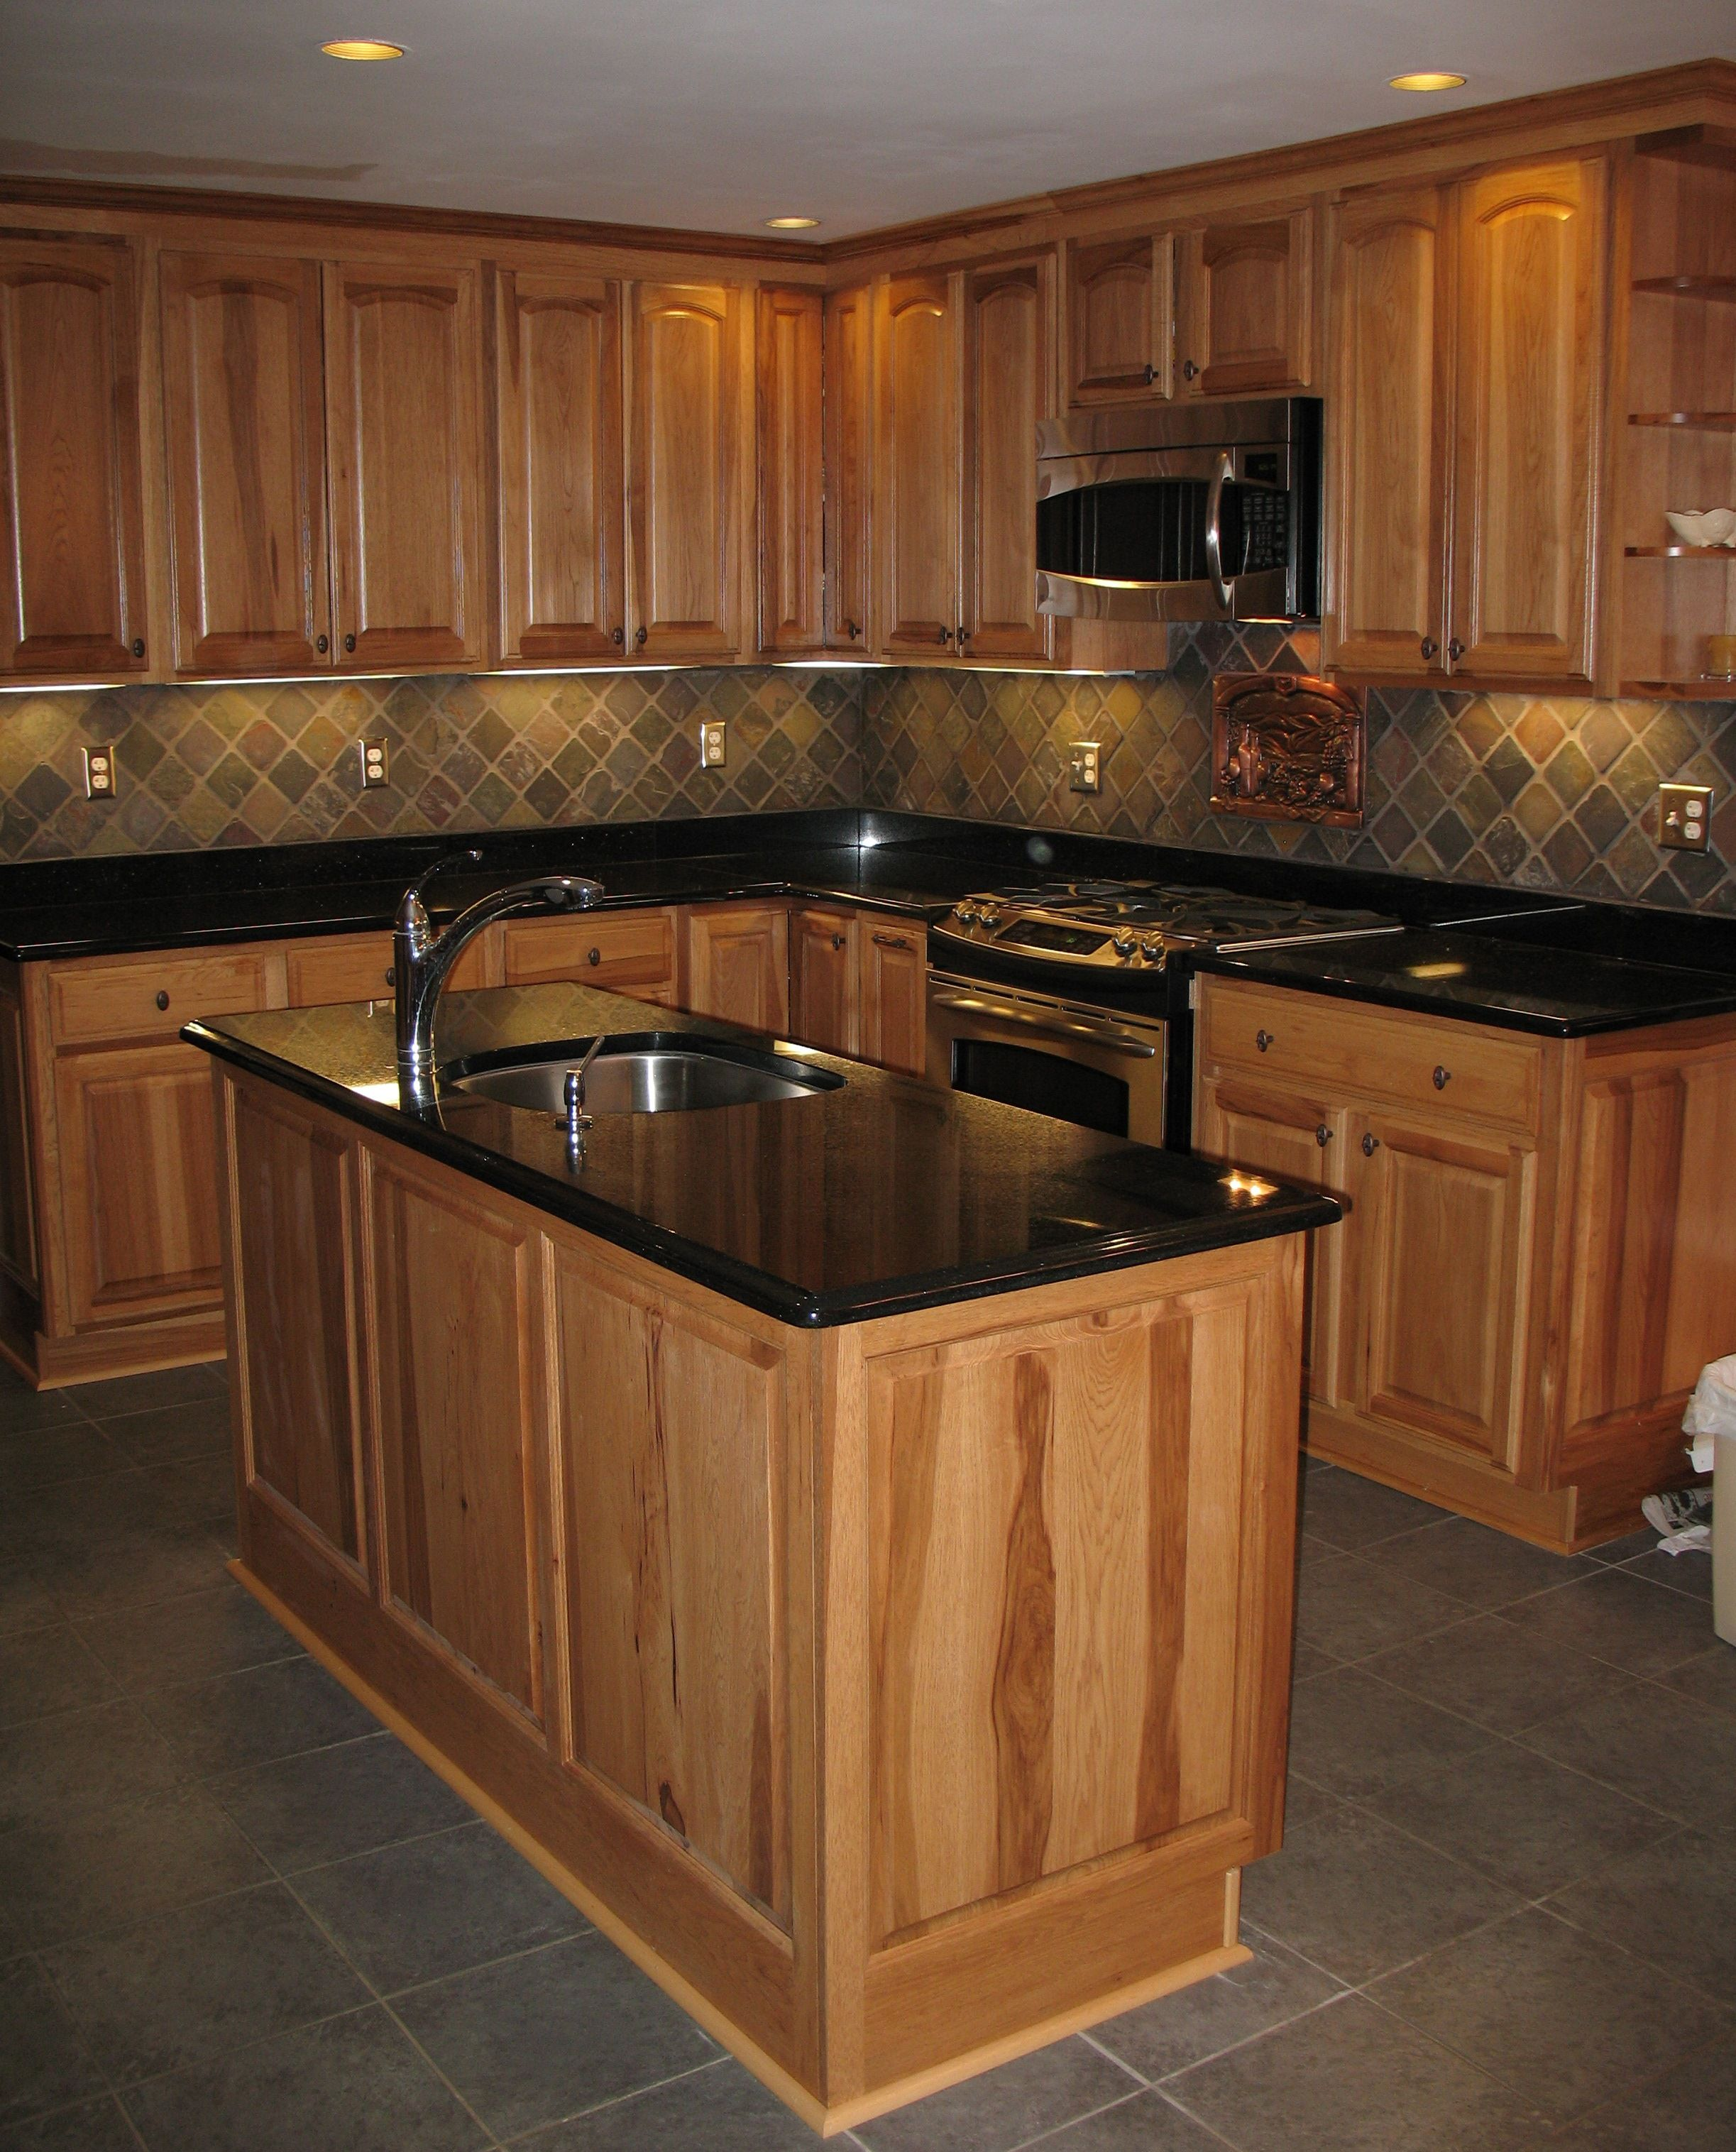 Black Slate Kitchen Tiles: My Husband And I Installed This Slate Backsplash